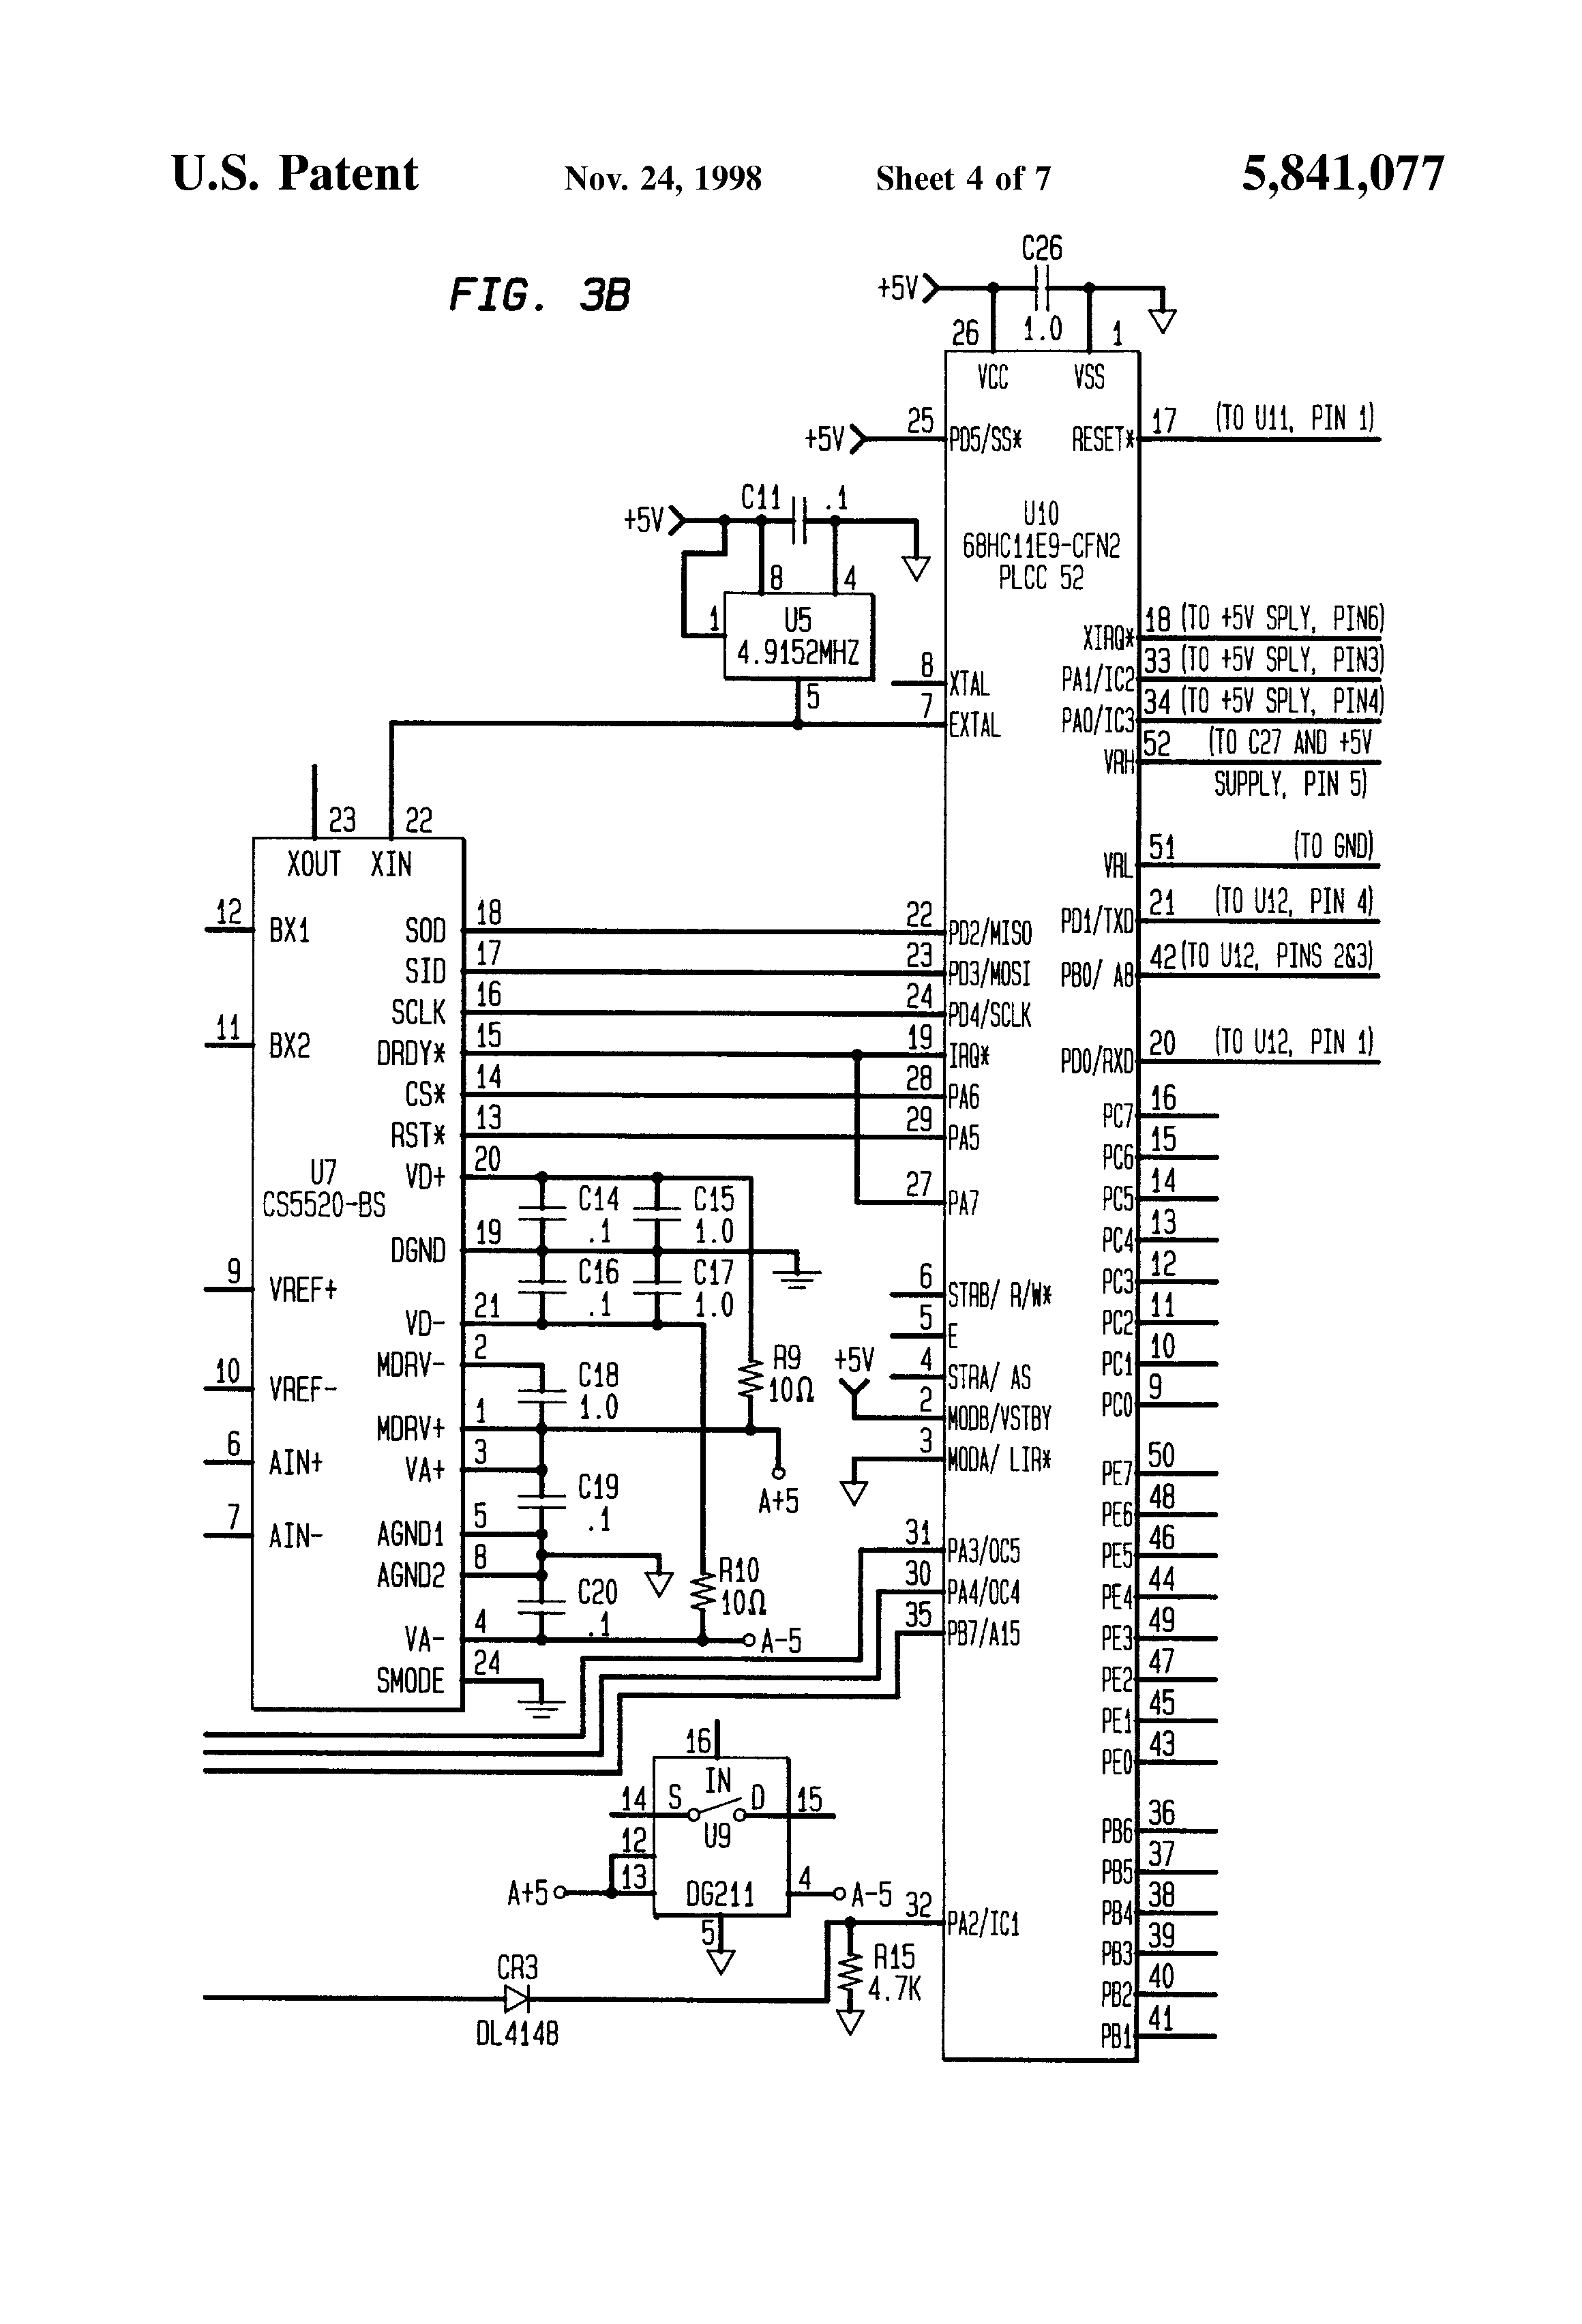 Load Cell Wiring Diagram Collection. Load Cell Wiring Diagram Junction Box Download. Wiring. Wire Diagram Junction At Scoala.co